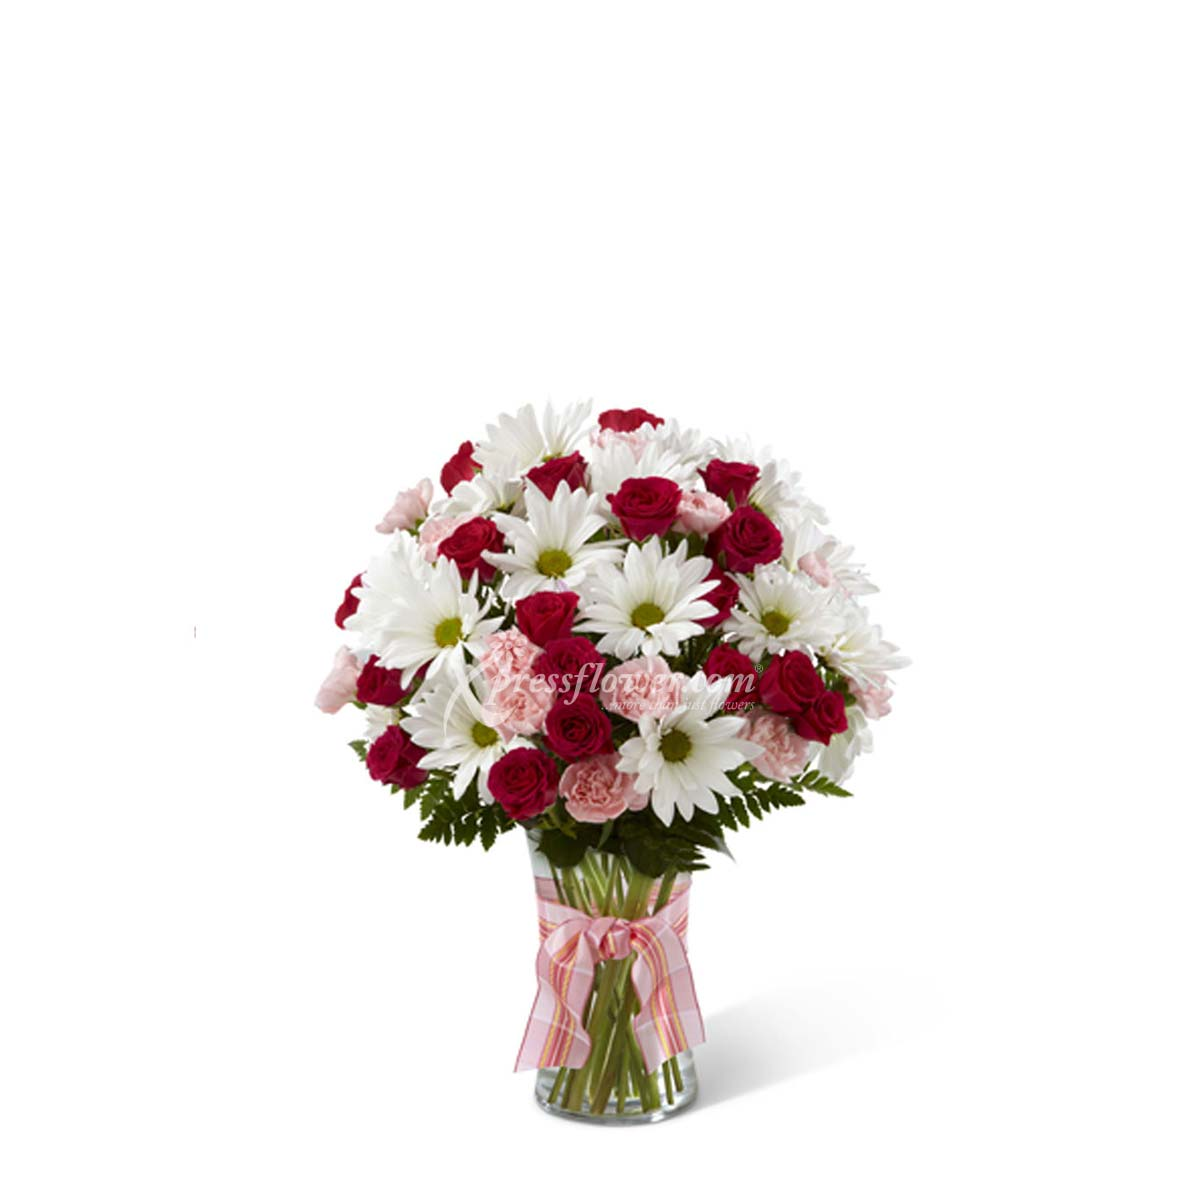 ARRANGEMENT OF ROSES AND GERBERAS/ DAISIES (TW)